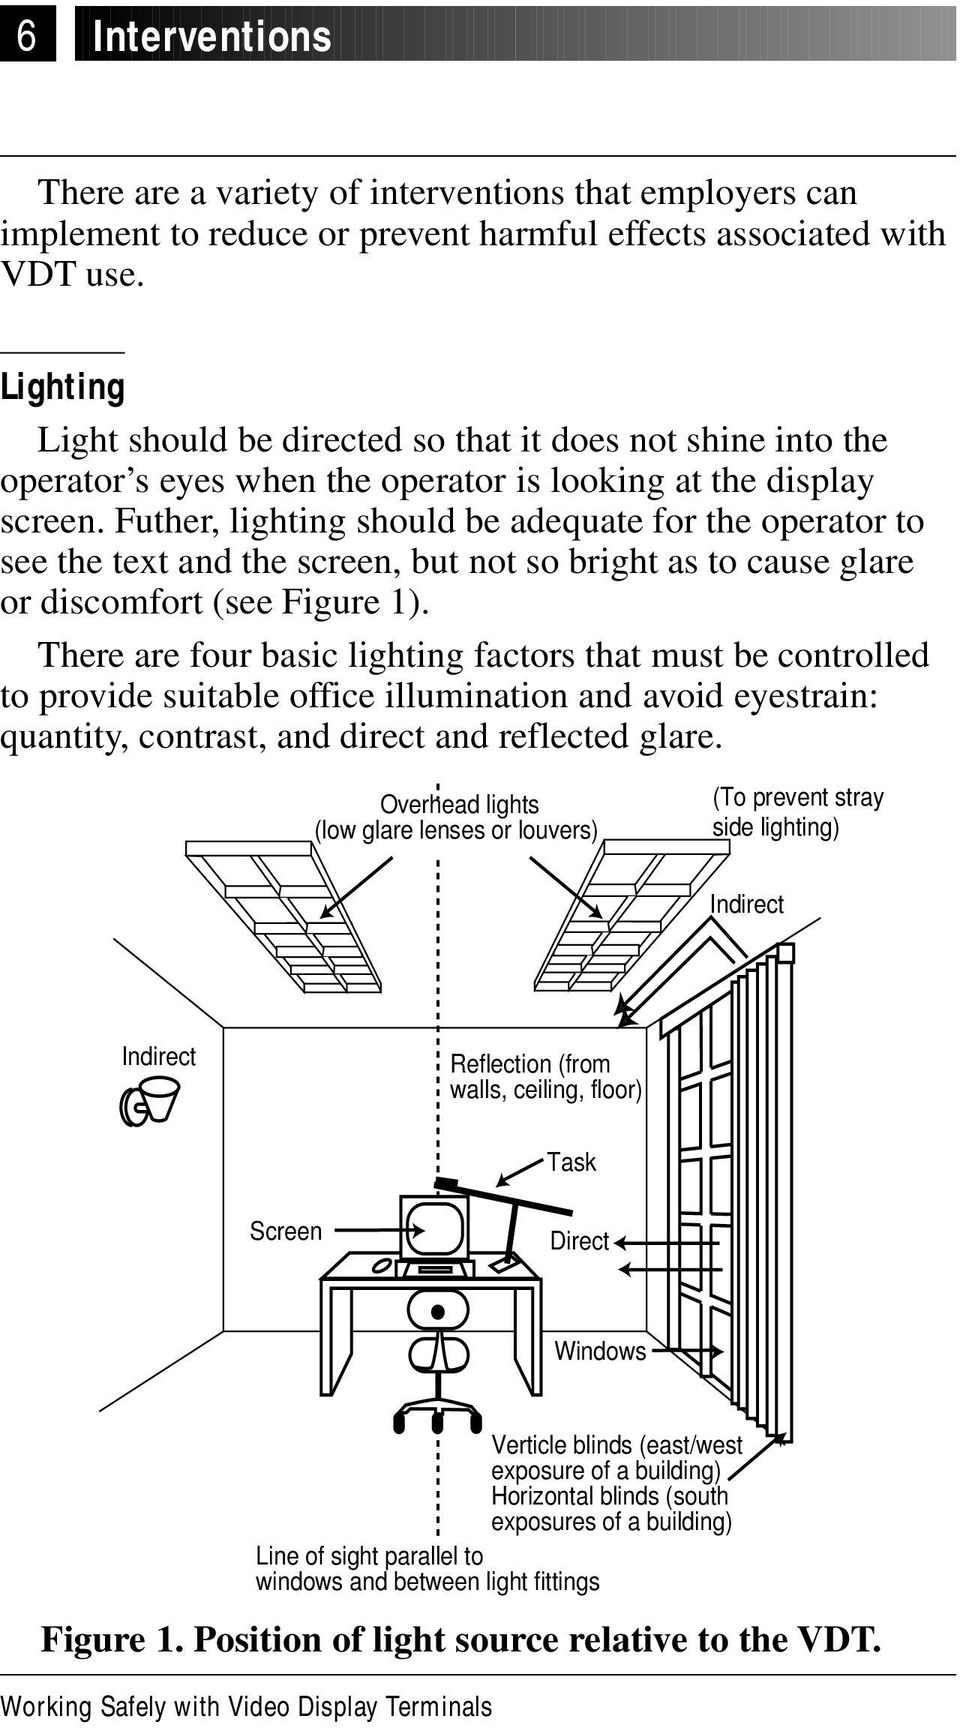 Futher, lighting should be adequate for the operator to see the text and the screen, but not so bright as to cause glare or discomfort (see Figure 1).